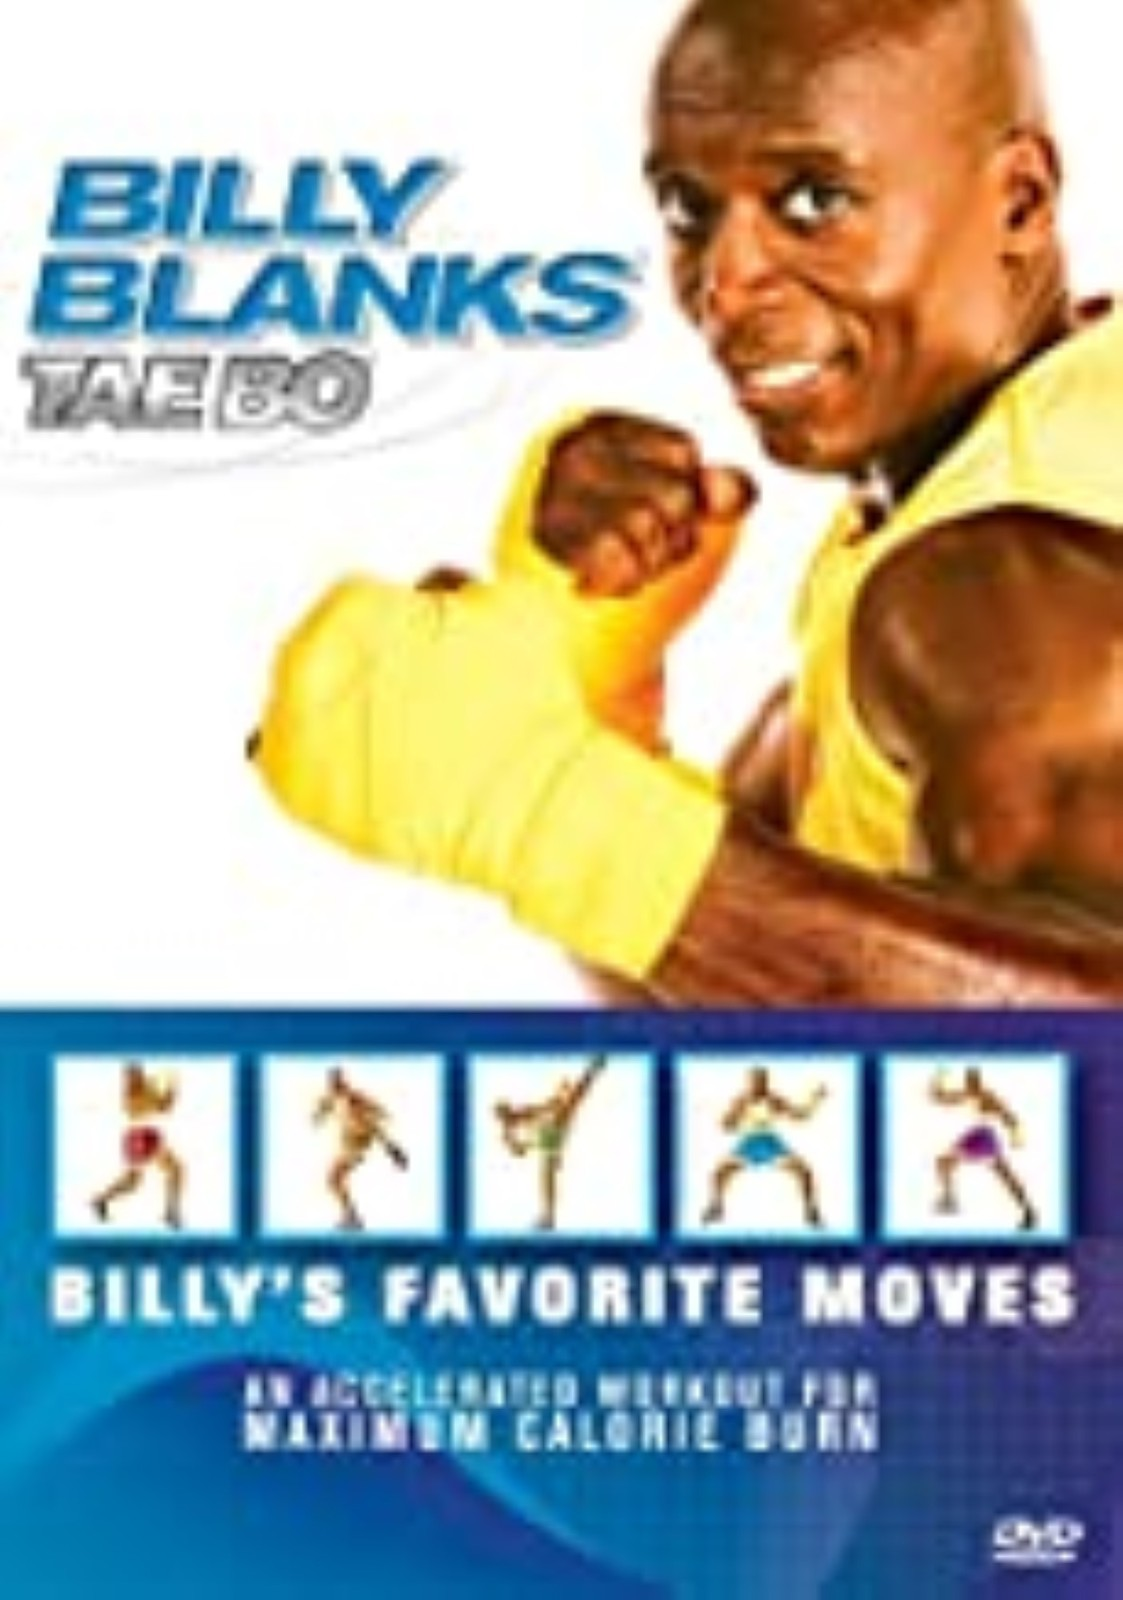 Billy Blanks - Tae Bo - Billy's Favorite Moves Dvd